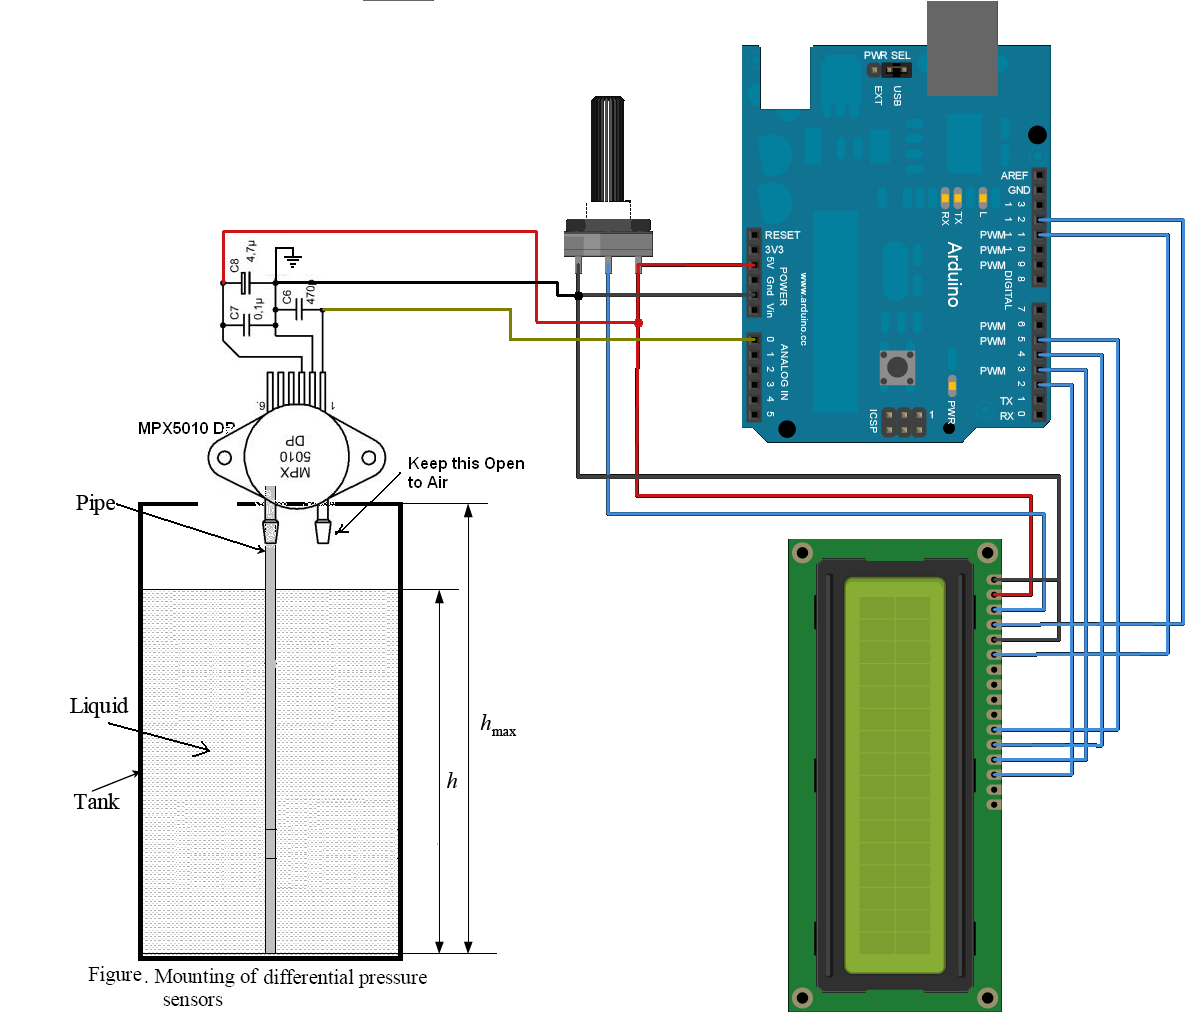 Tank Float Switch Schematic Simple Guide About Wiring Diagram 4 Water Pressure Sensor Circuit And